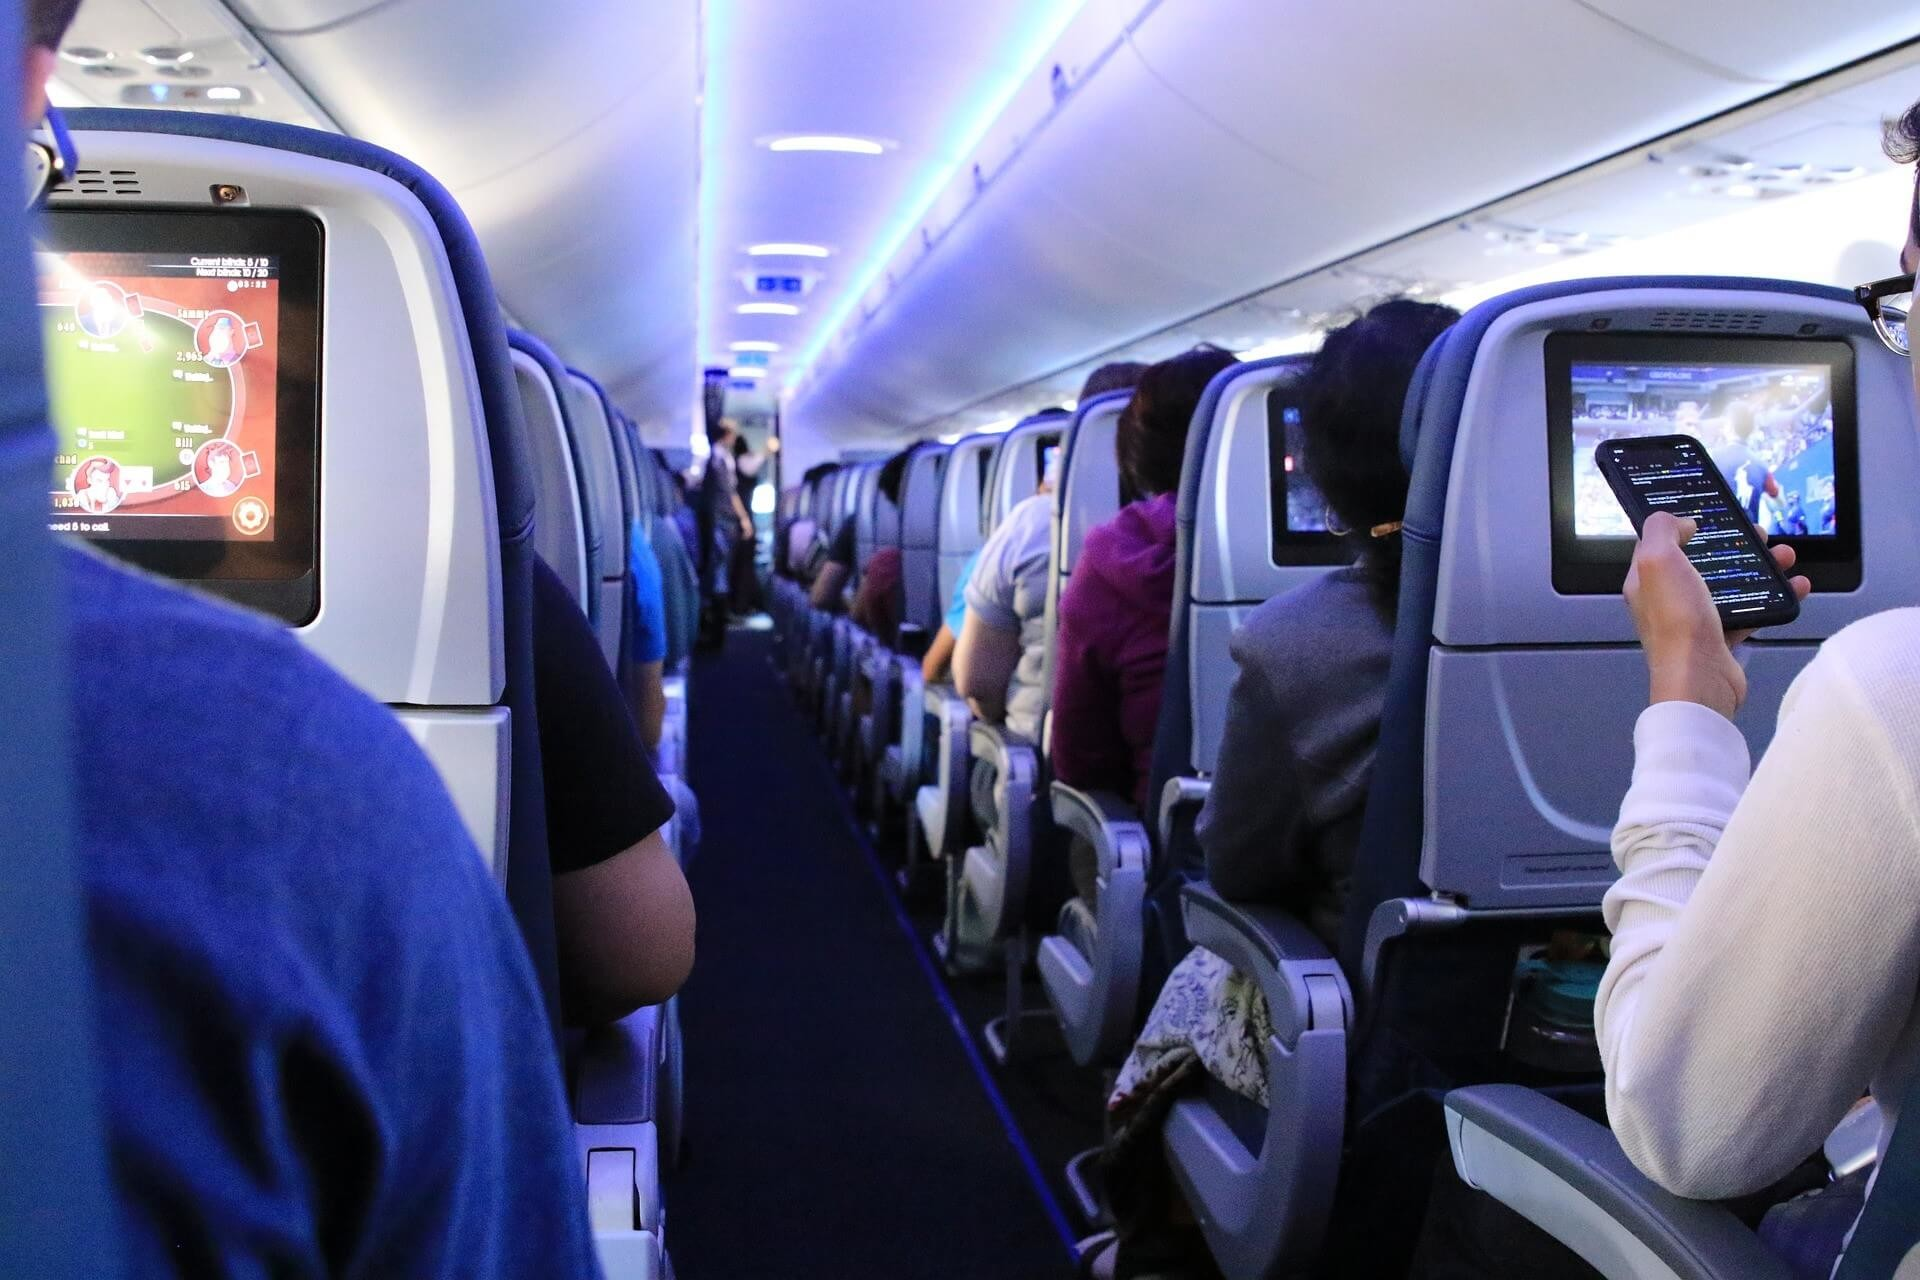 Finding the best flight deal - here's how